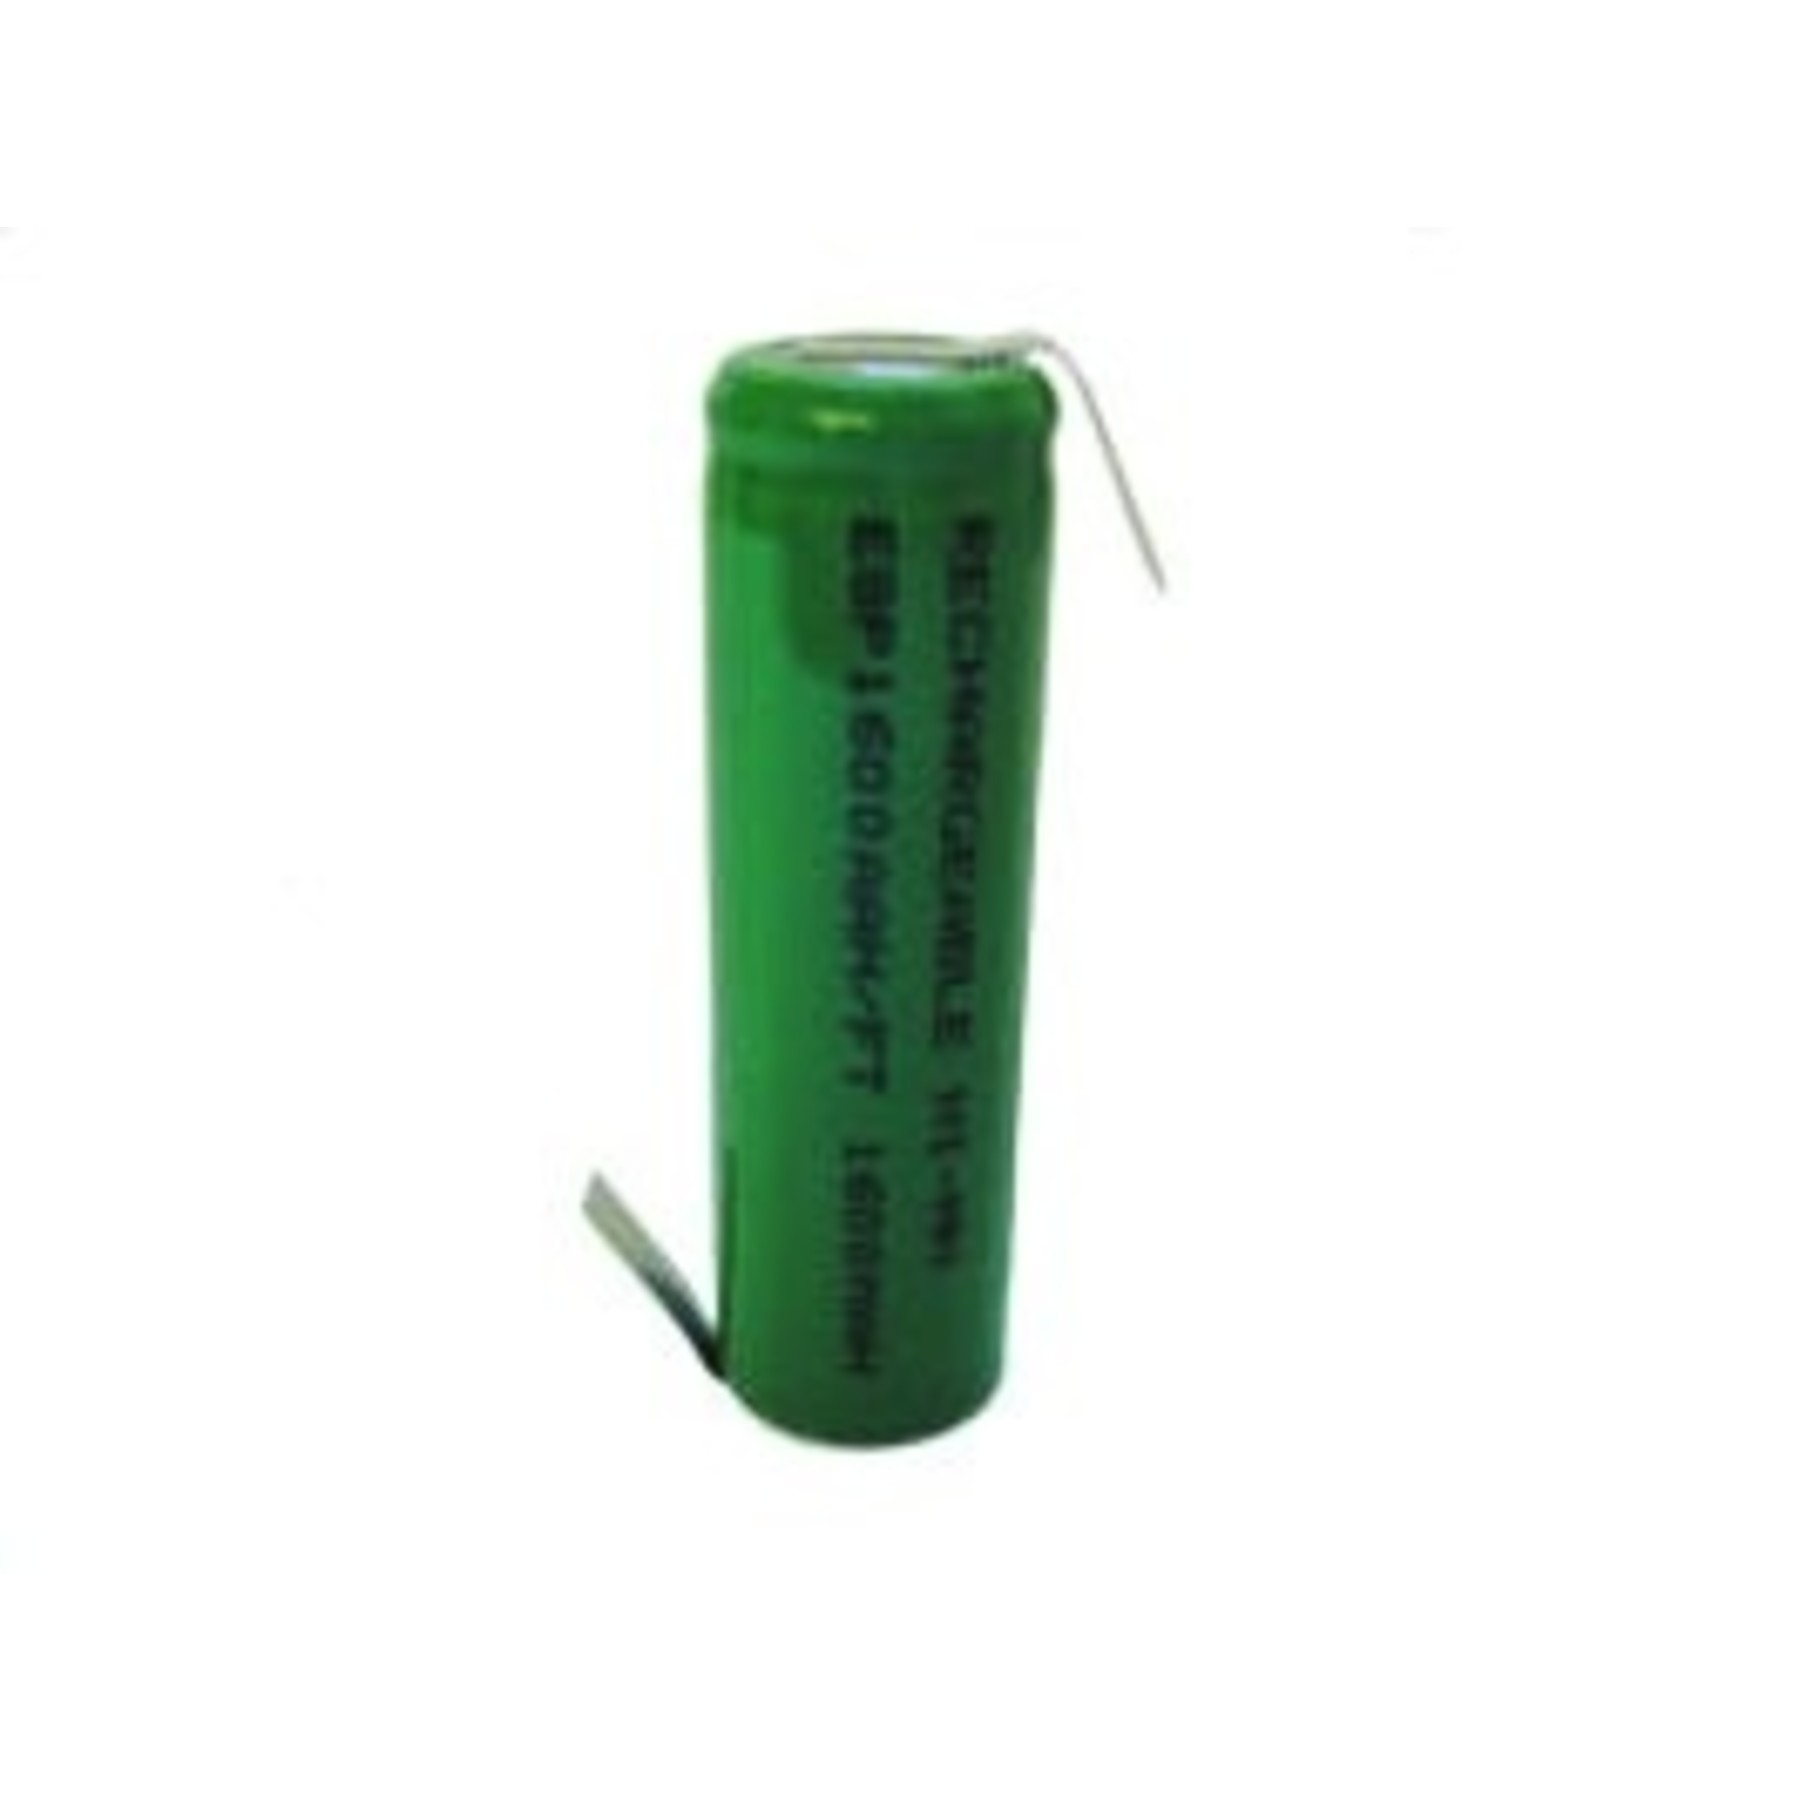 rechargeable nimh aa cell 1600 mah tagged battery ebay. Black Bedroom Furniture Sets. Home Design Ideas